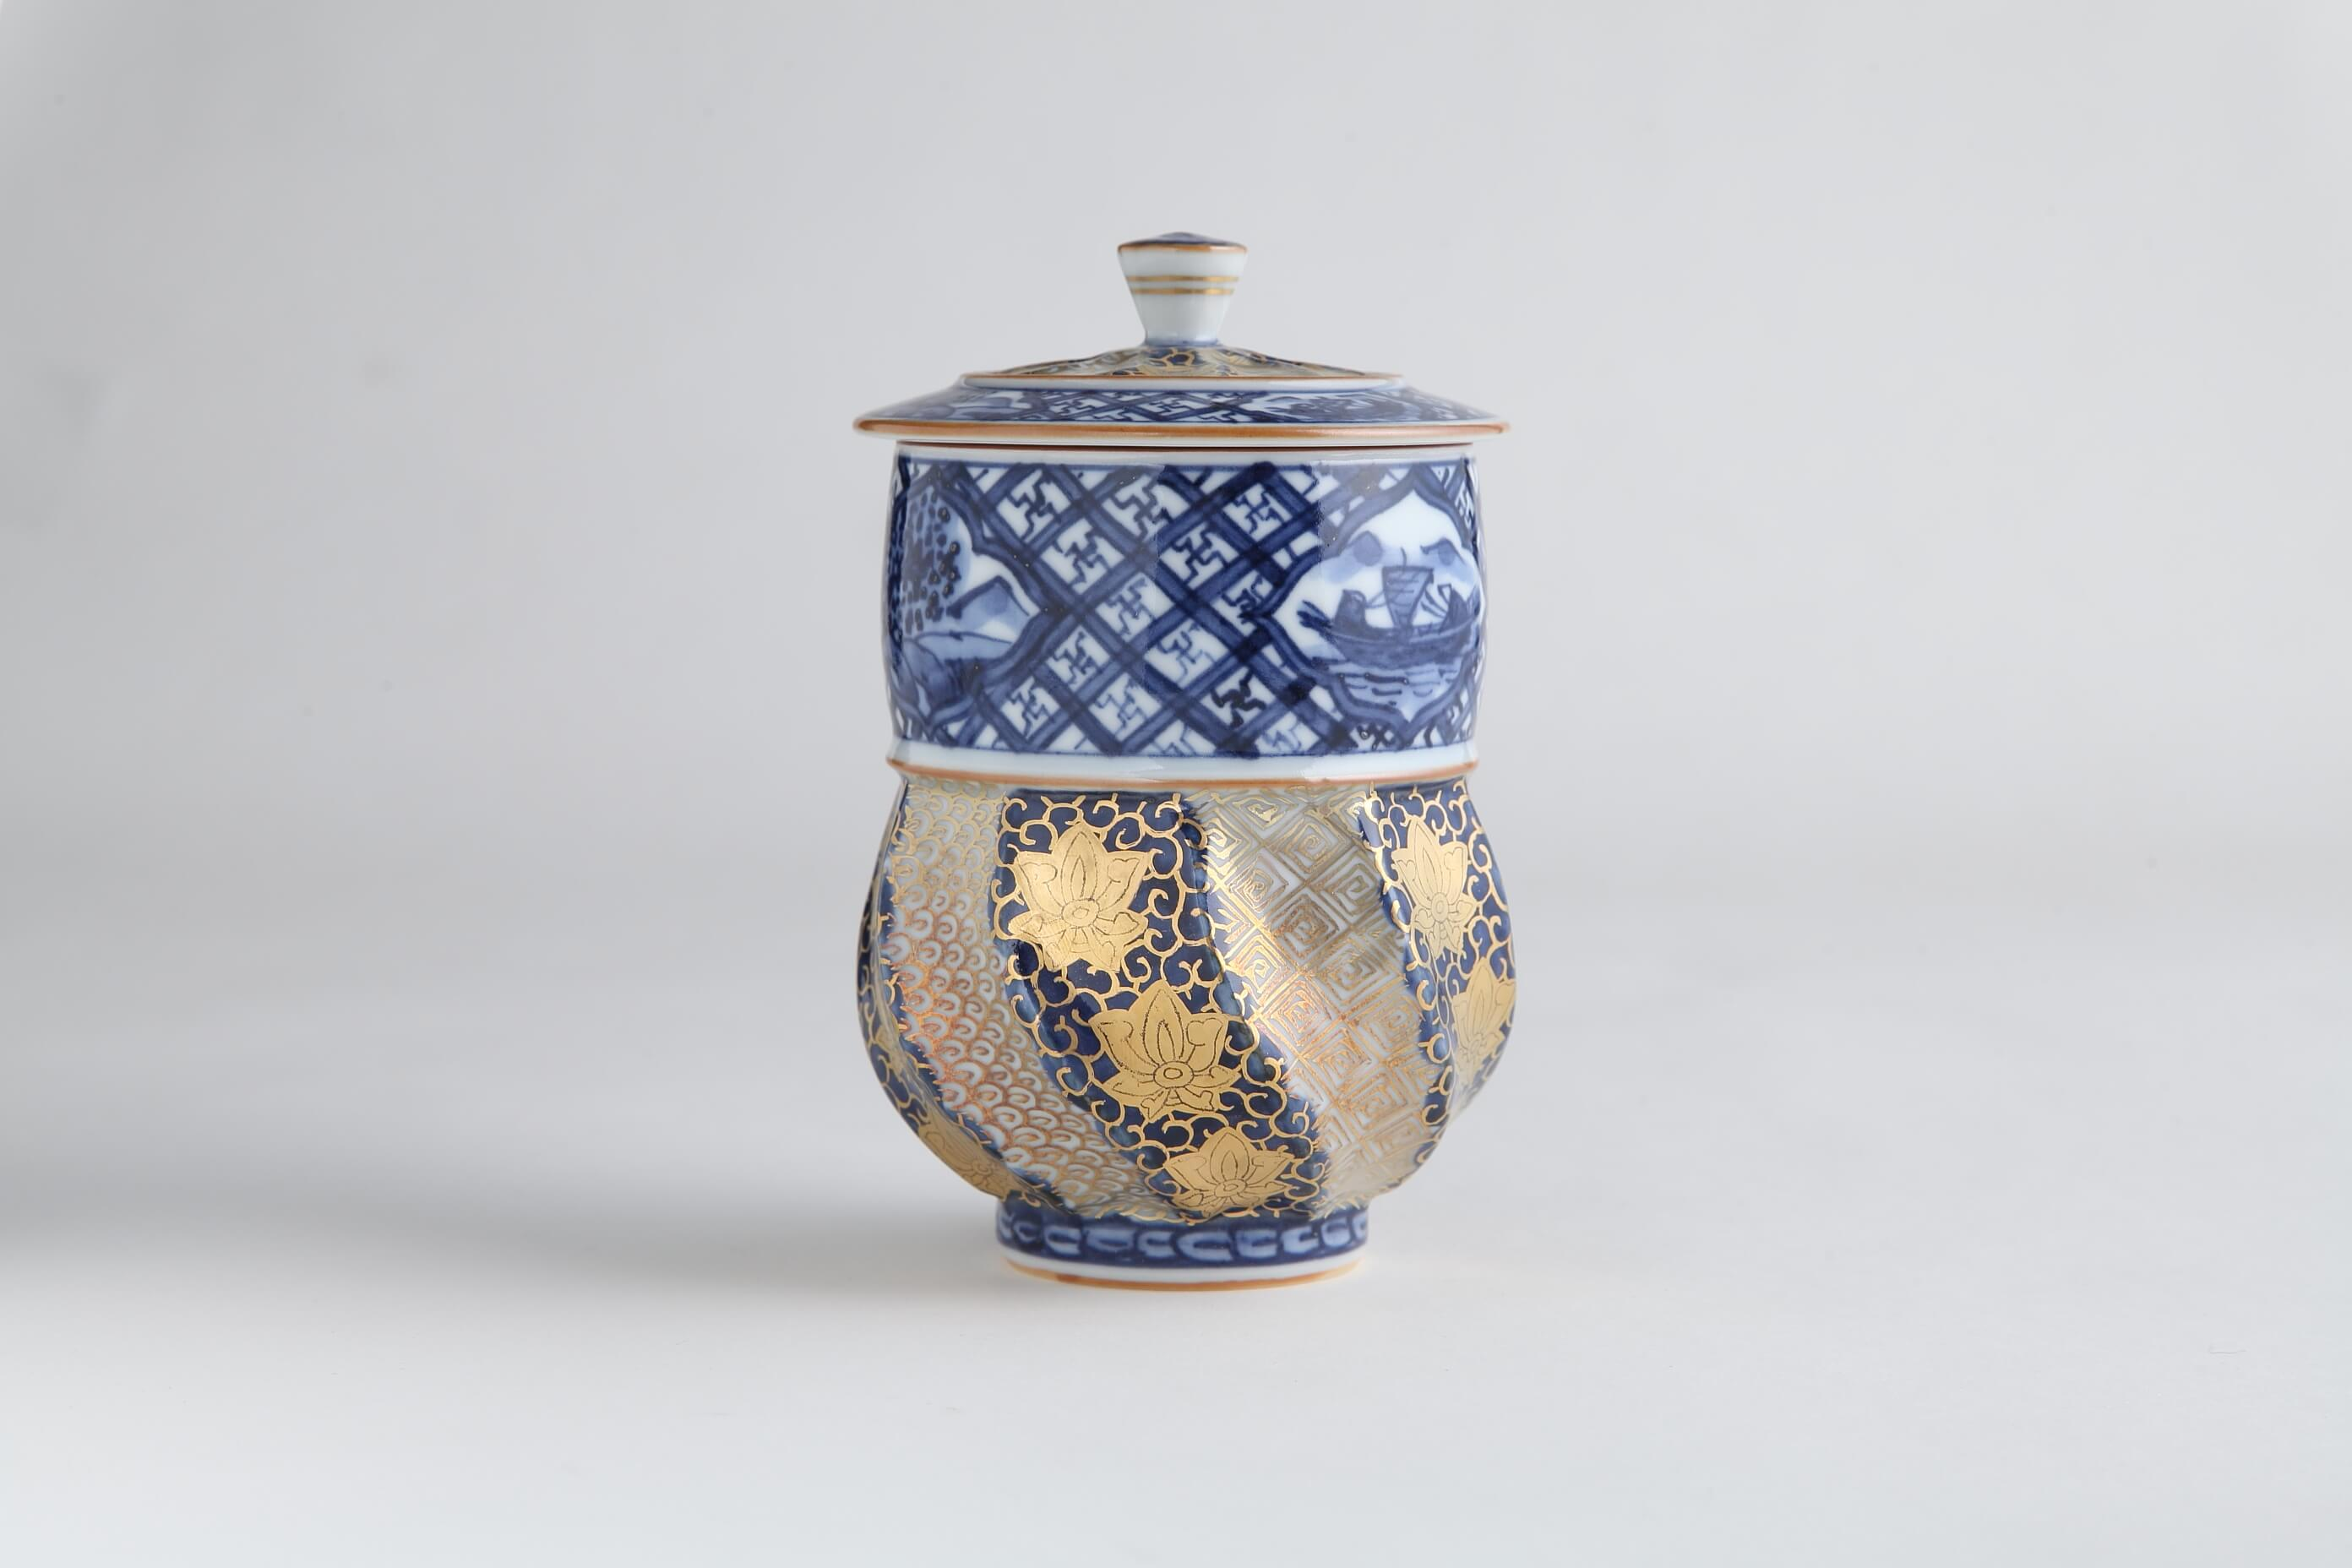 kinrande-hanakarakusa-blue-serving-bowl-with-lid